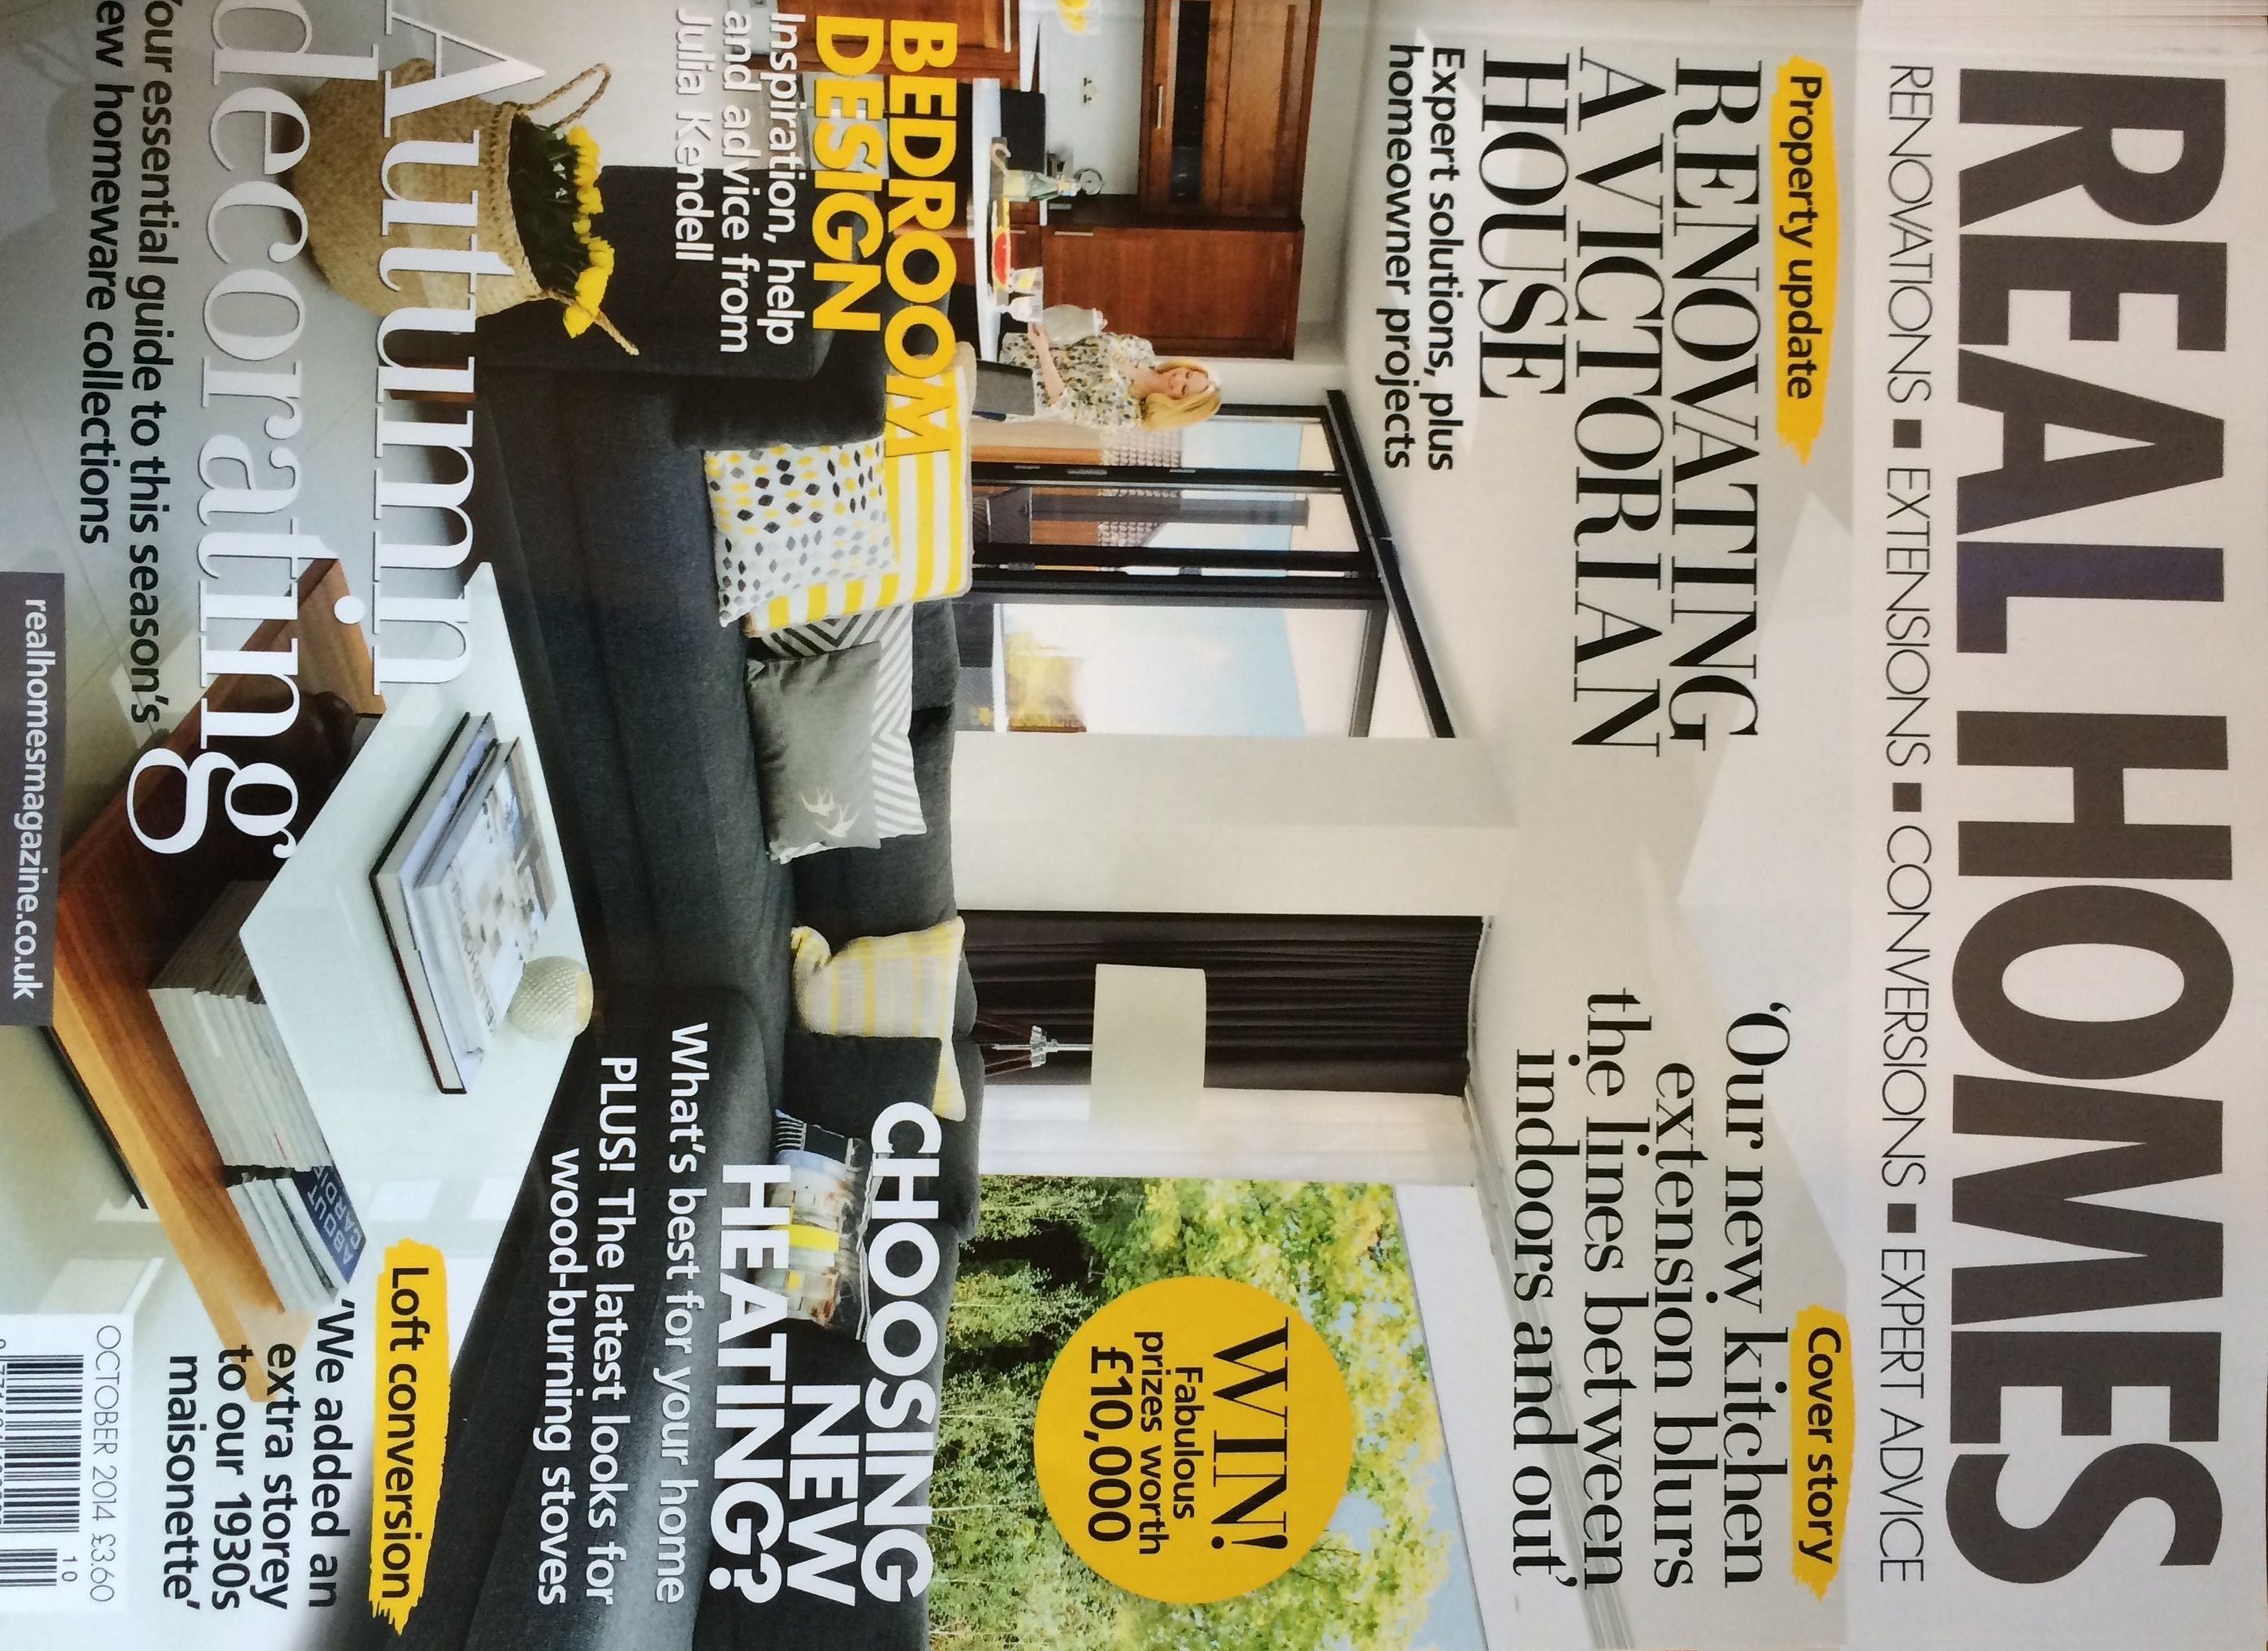 Real Homes Cover Oct 2014 | My Published Magazine Covers and ...